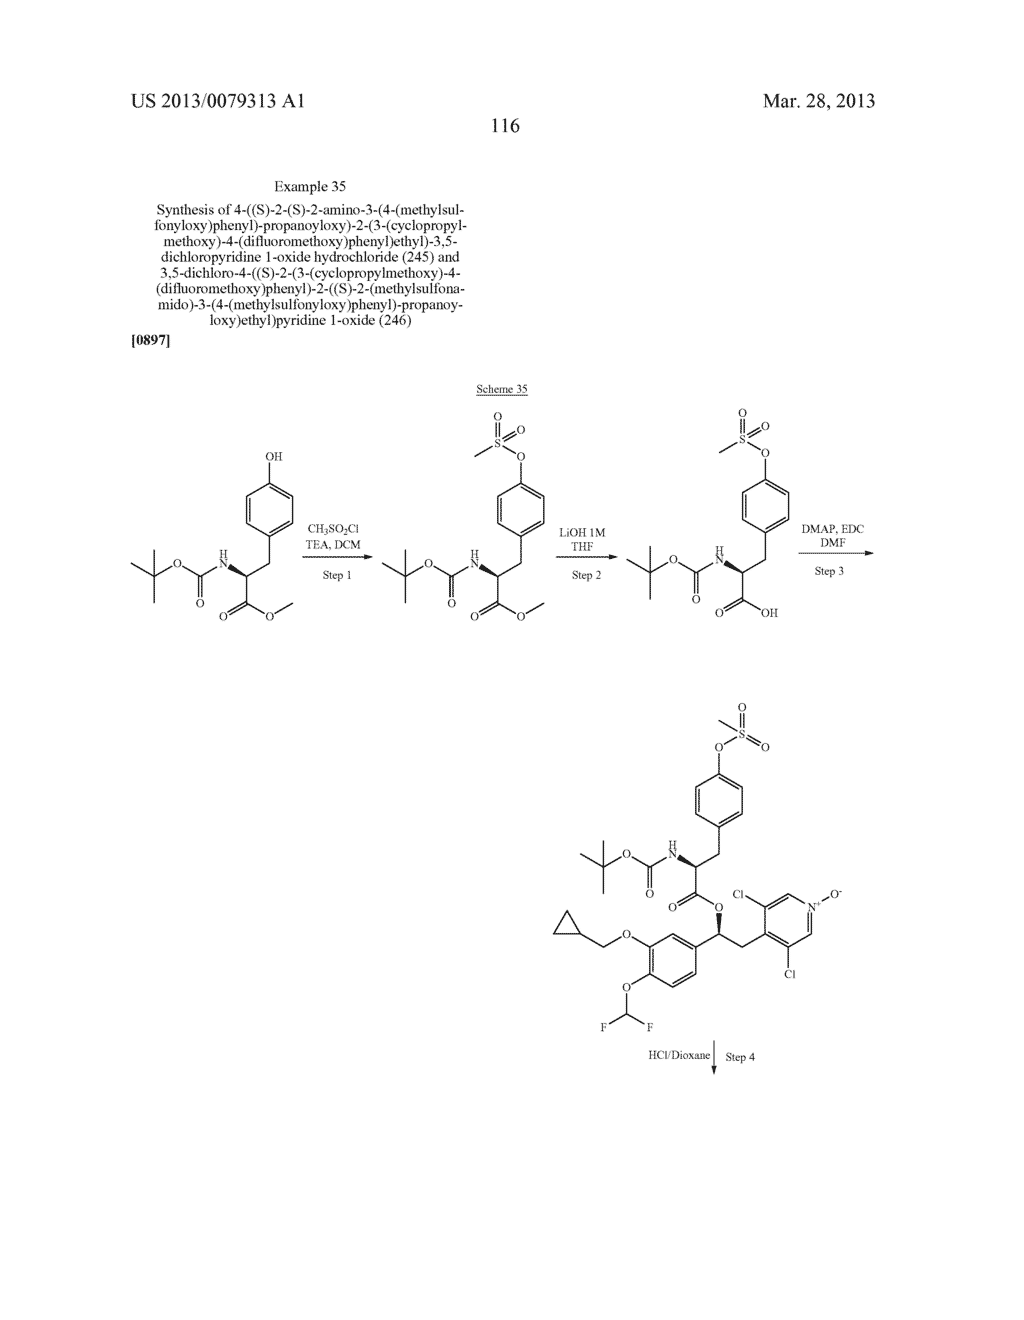 DERIVATIVES OF 1-PHENYL-2-PYRIDINYL ALKYL ALCOHOLS AS PHOSPHODIESTERASE     INHIBITORS - diagram, schematic, and image 117